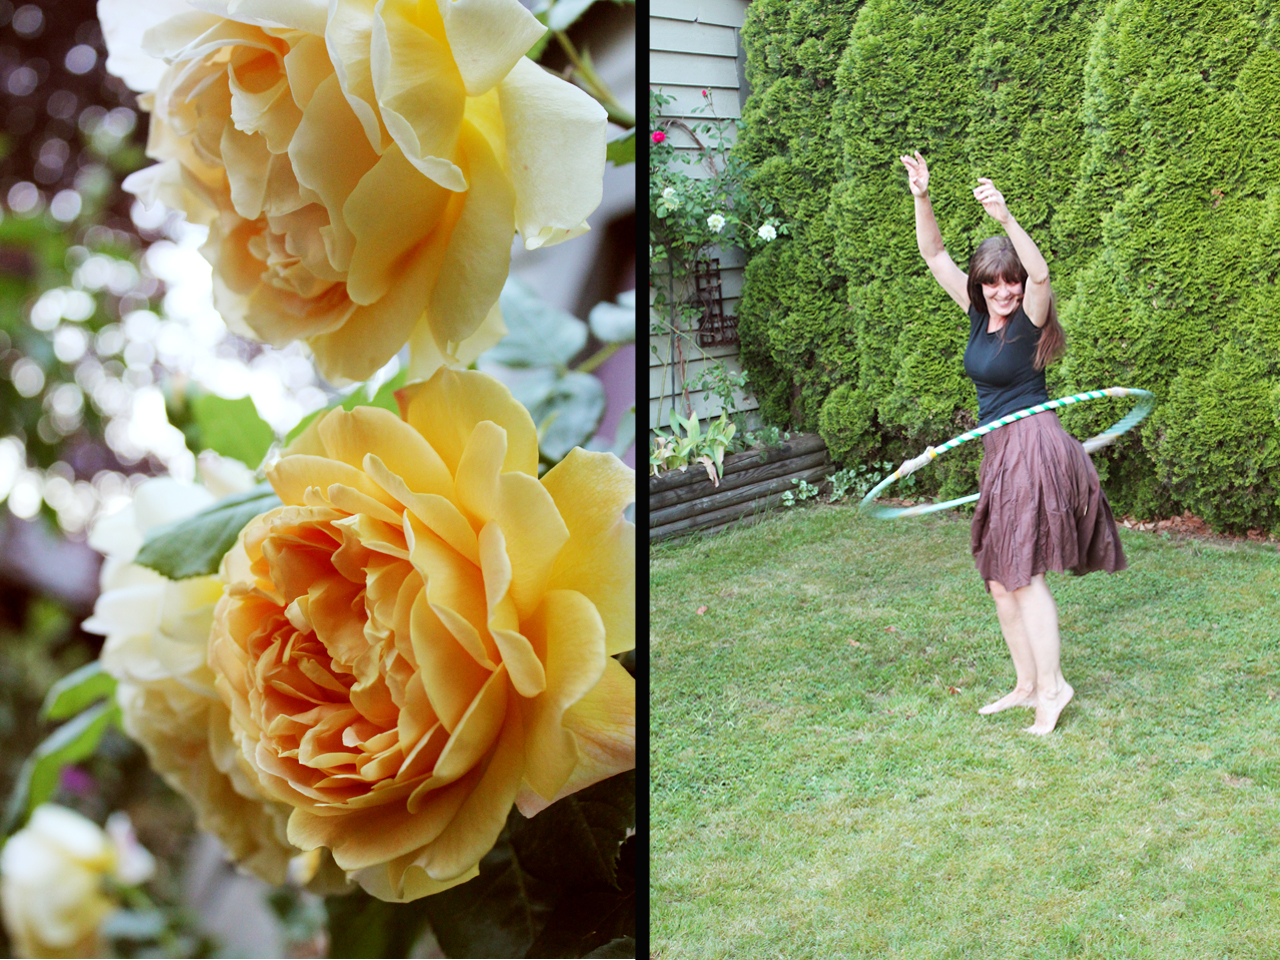 me and roses